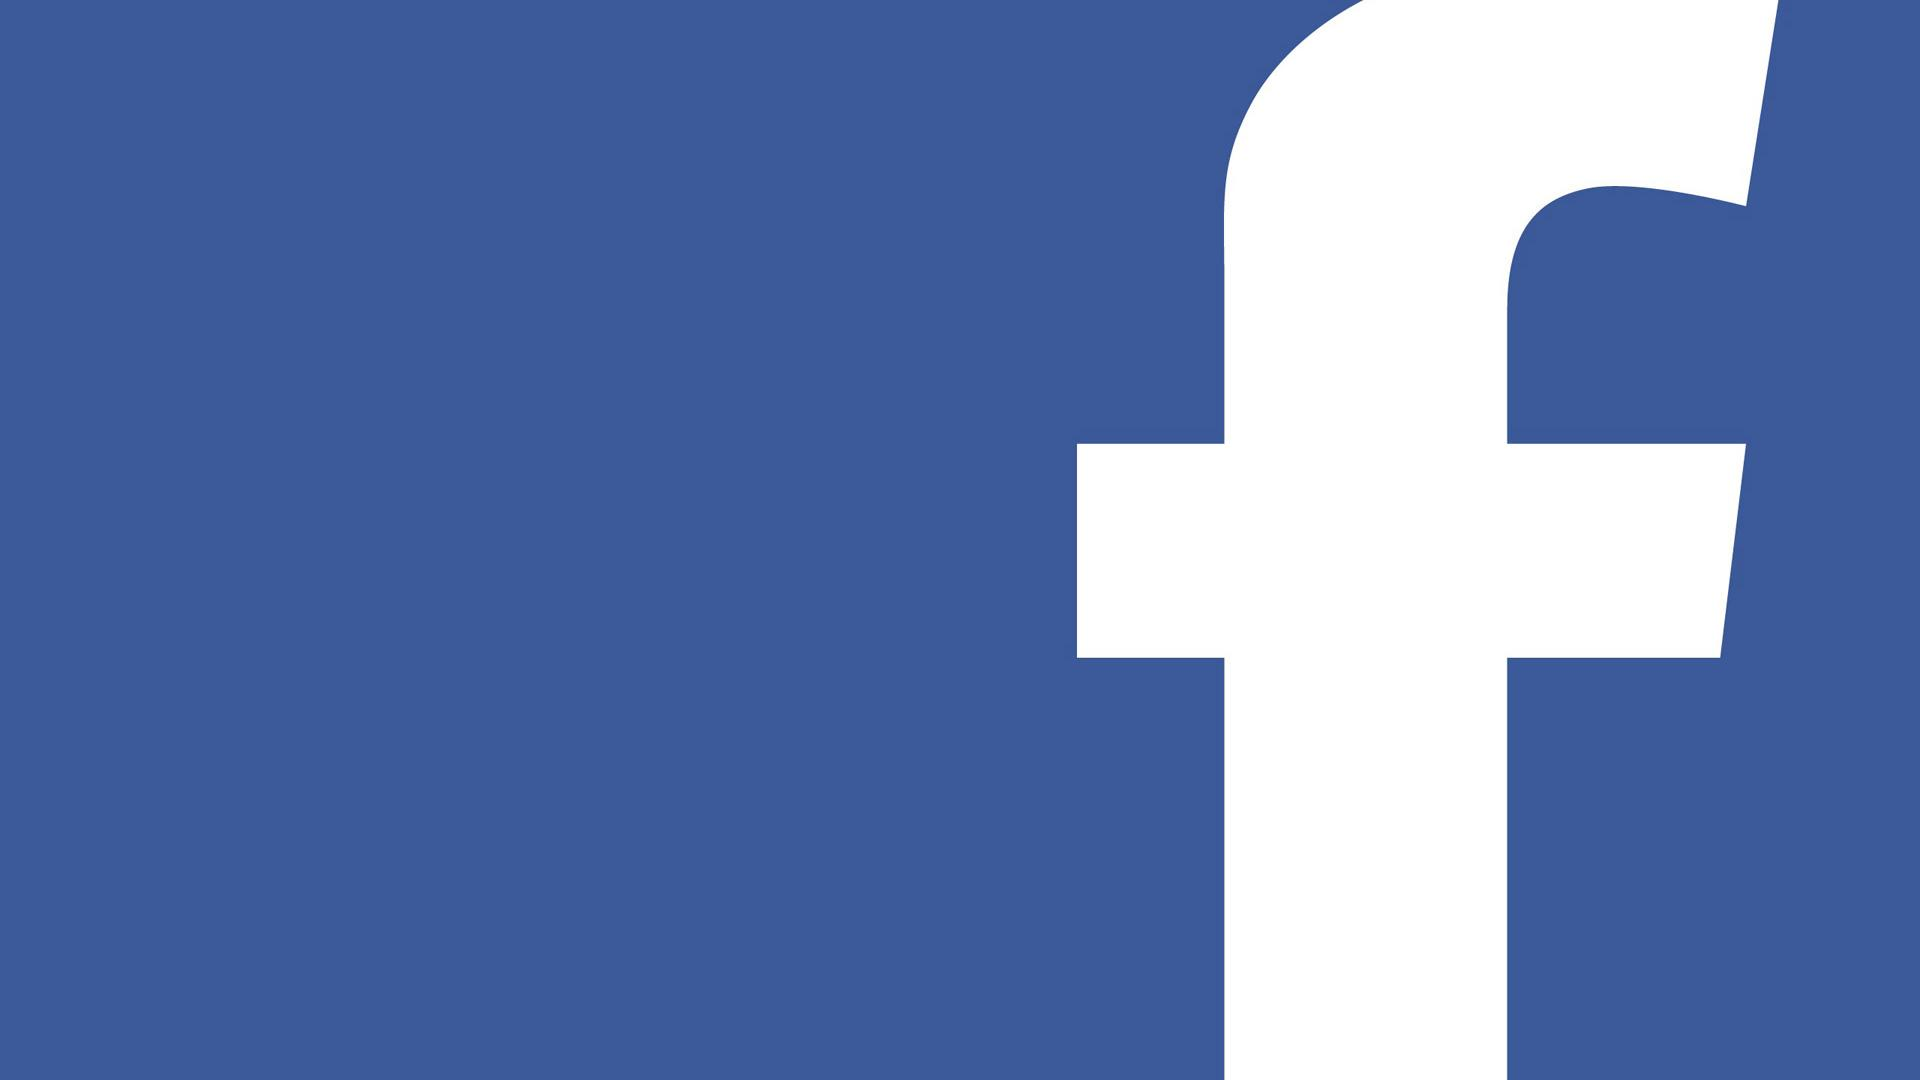 Description Facebook Logo HD Wallpaper is a hi res Wallpaper for pc 1920x1080